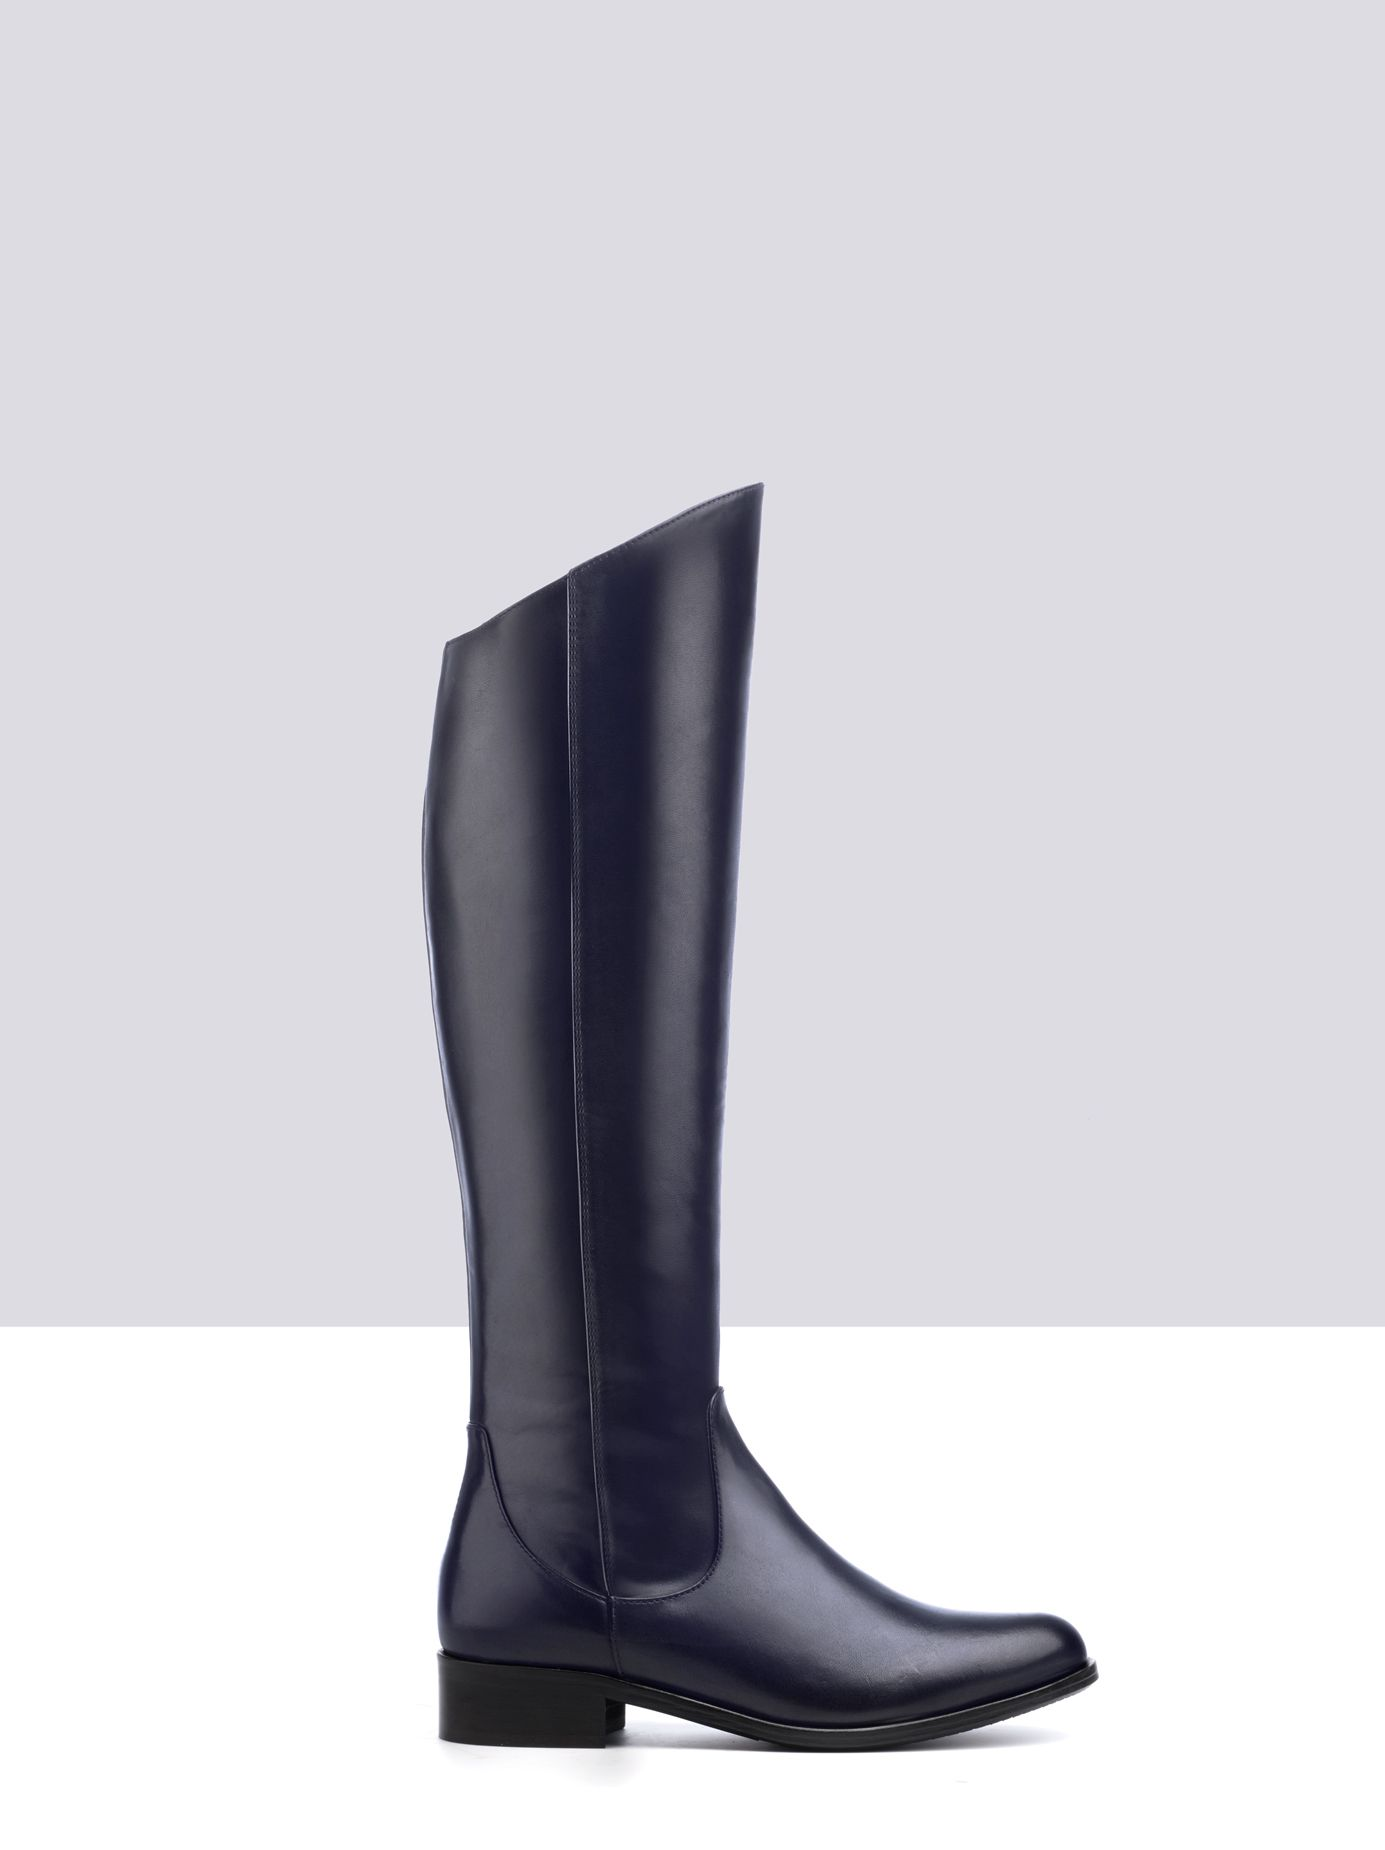 89117f8f468 Huntsman - Knee High Boots in Black Leather by Ted Muffy US ...